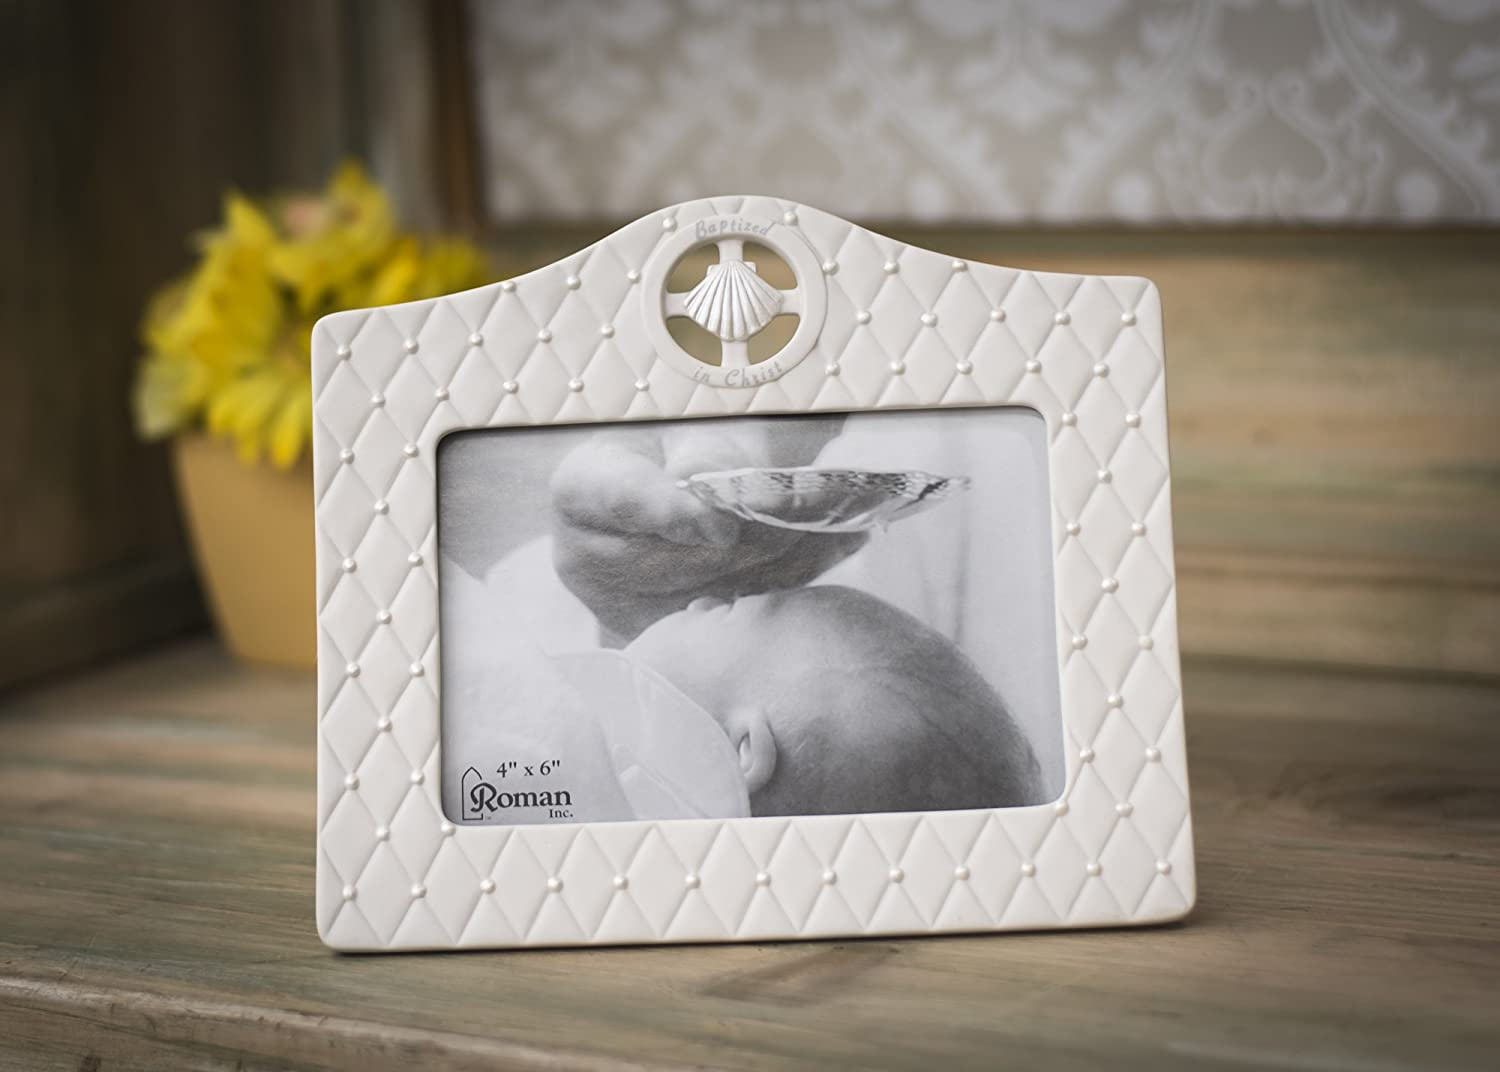 Sea Shell Baptized in Christ 7 x 7.5 inch Porcelain Inspirational Photo Frame